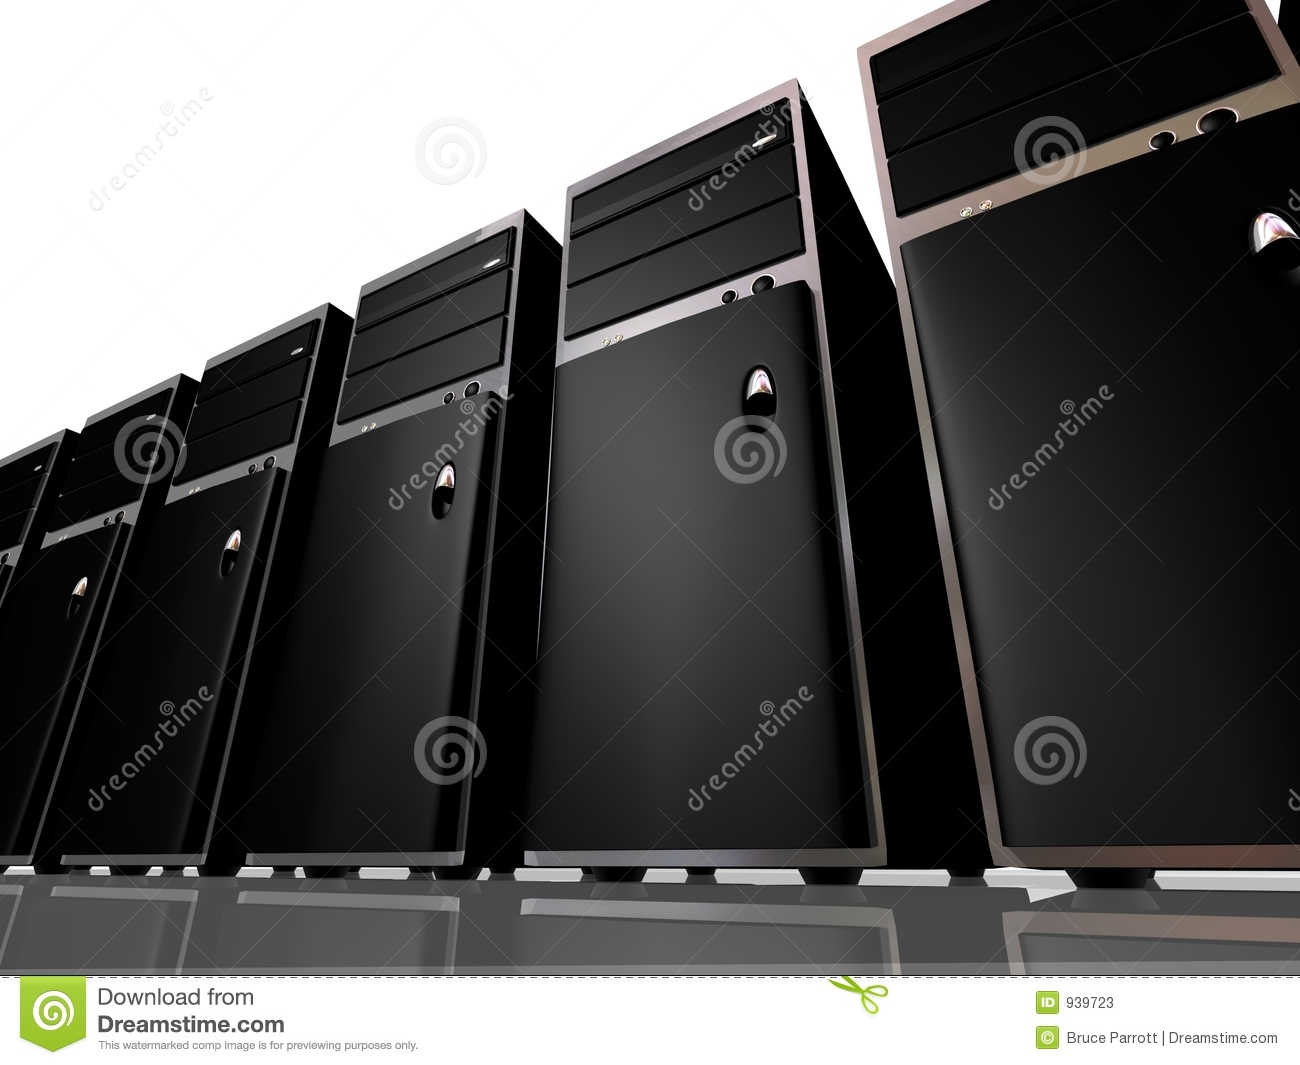 Tower Model Computers Or Servers Stock Photos Image 939723